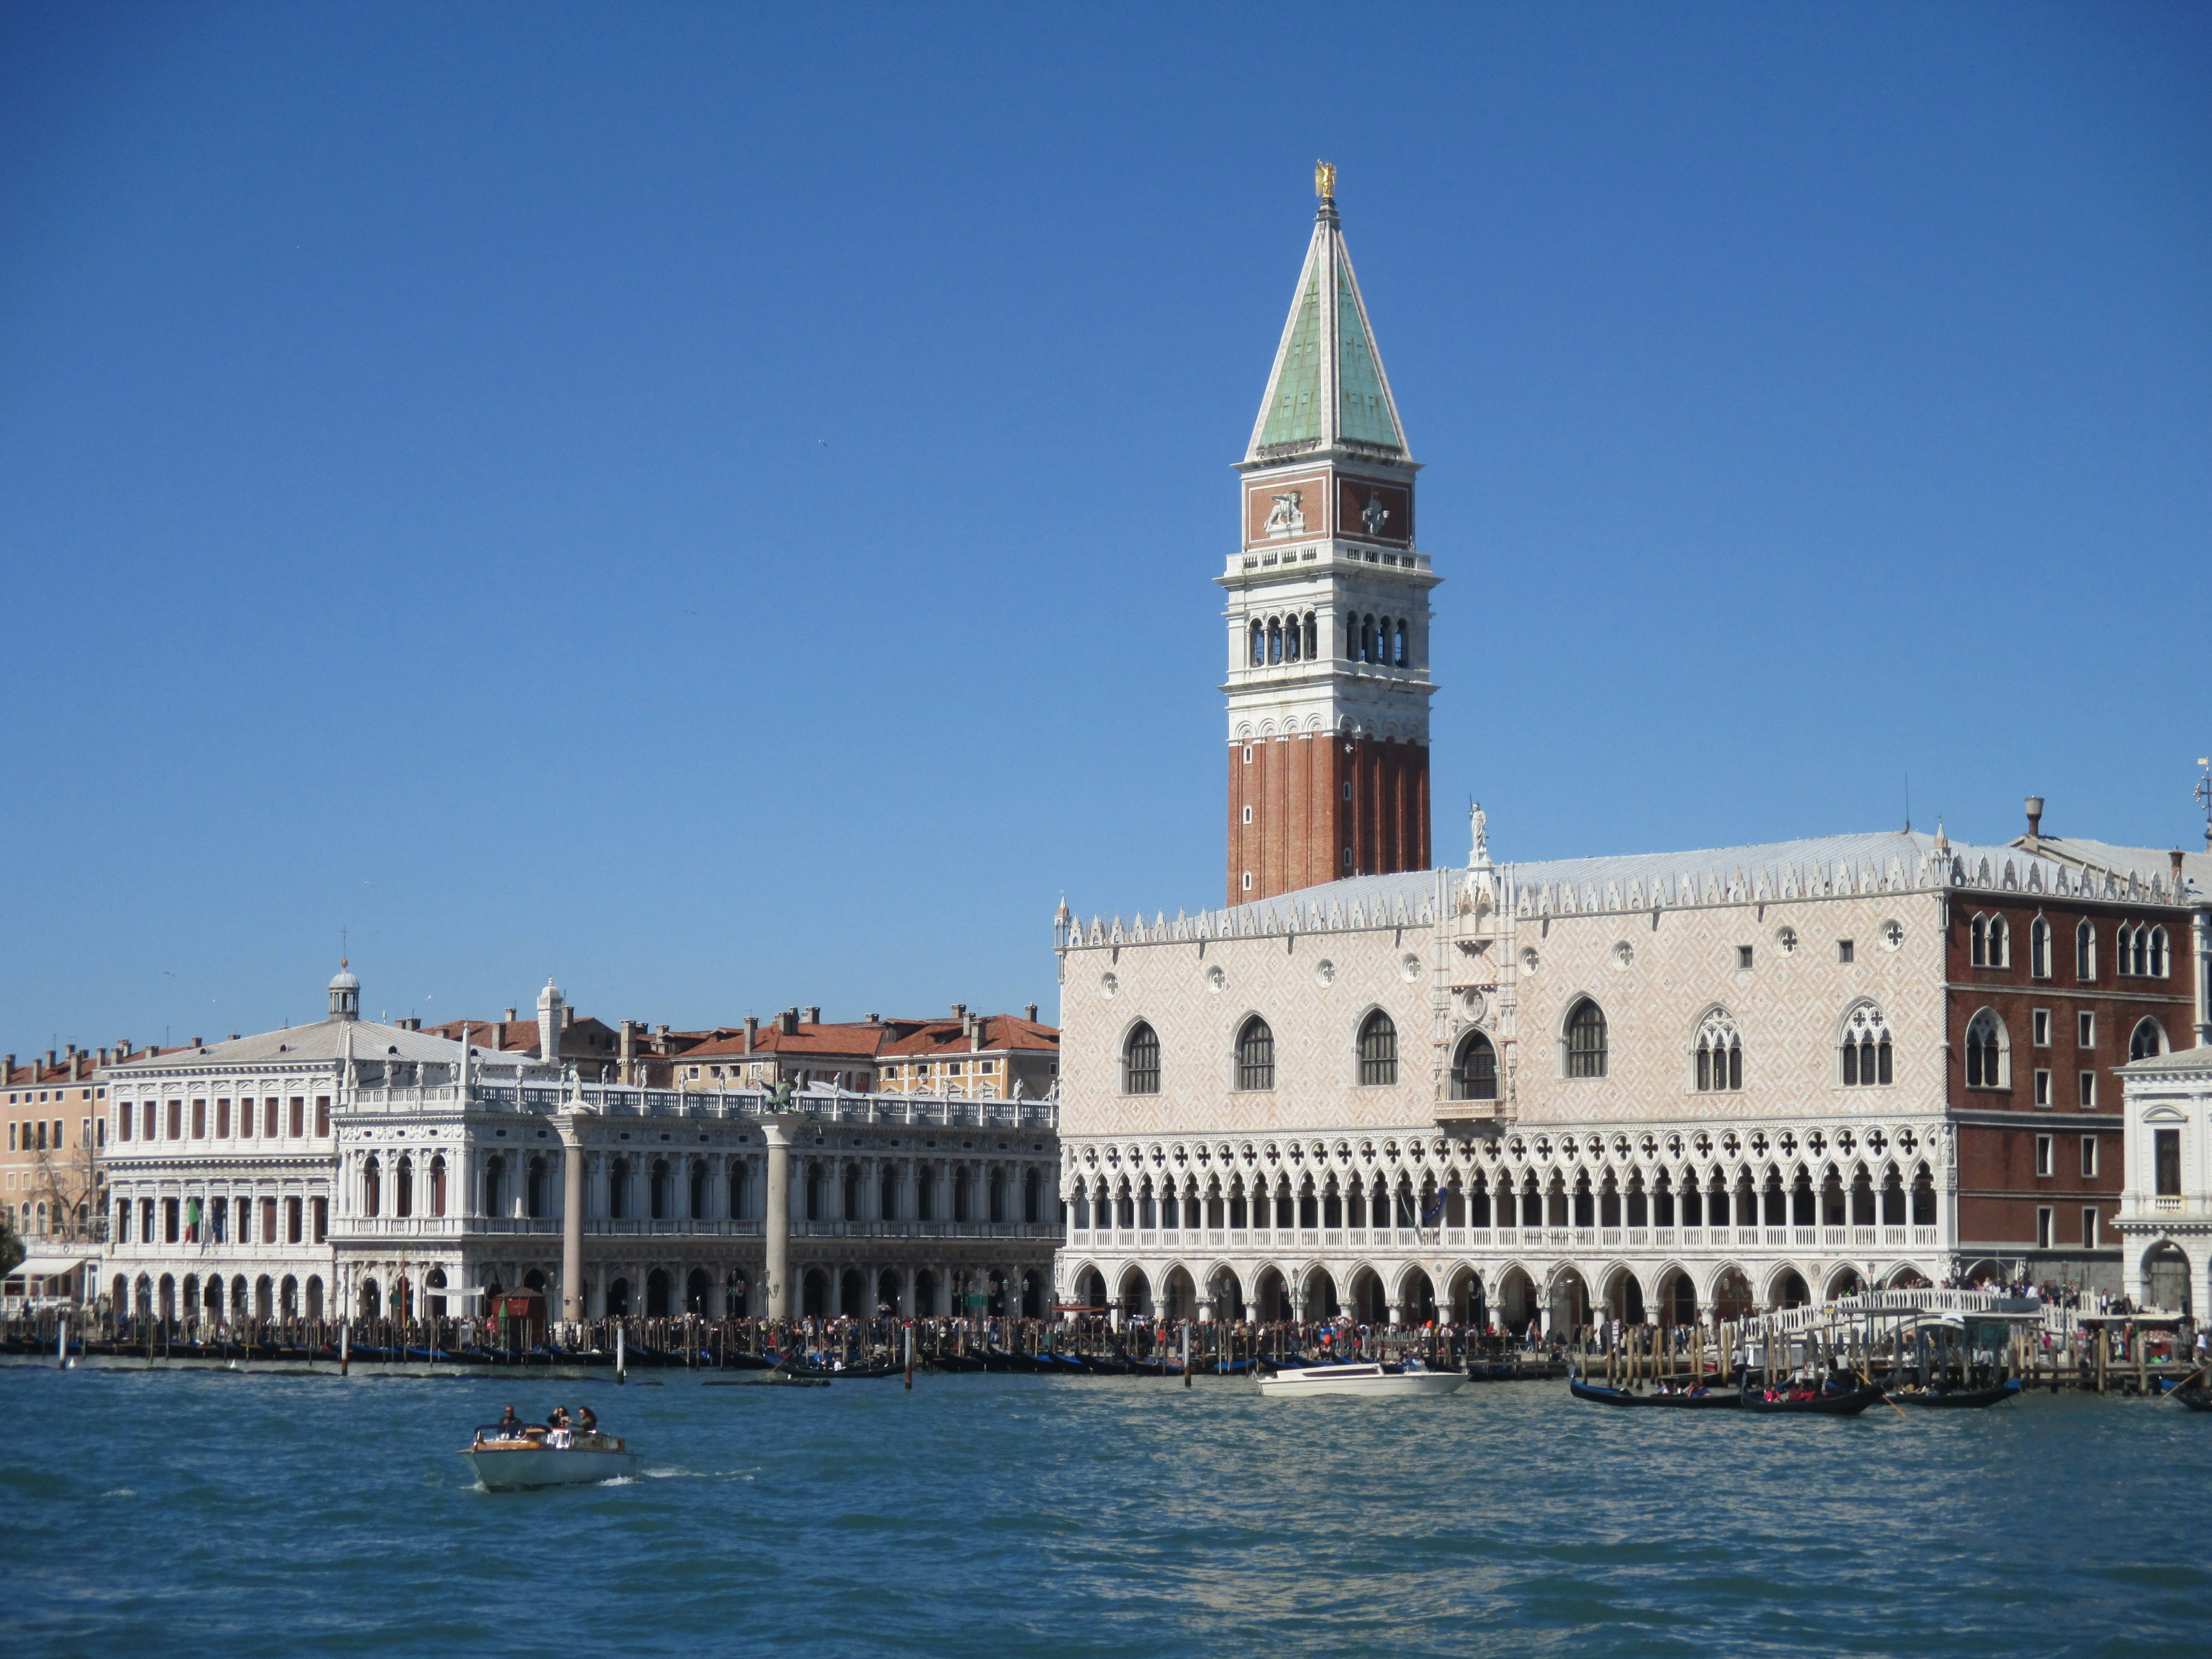 Venice. World Heritage site in risk of sea-level rise.